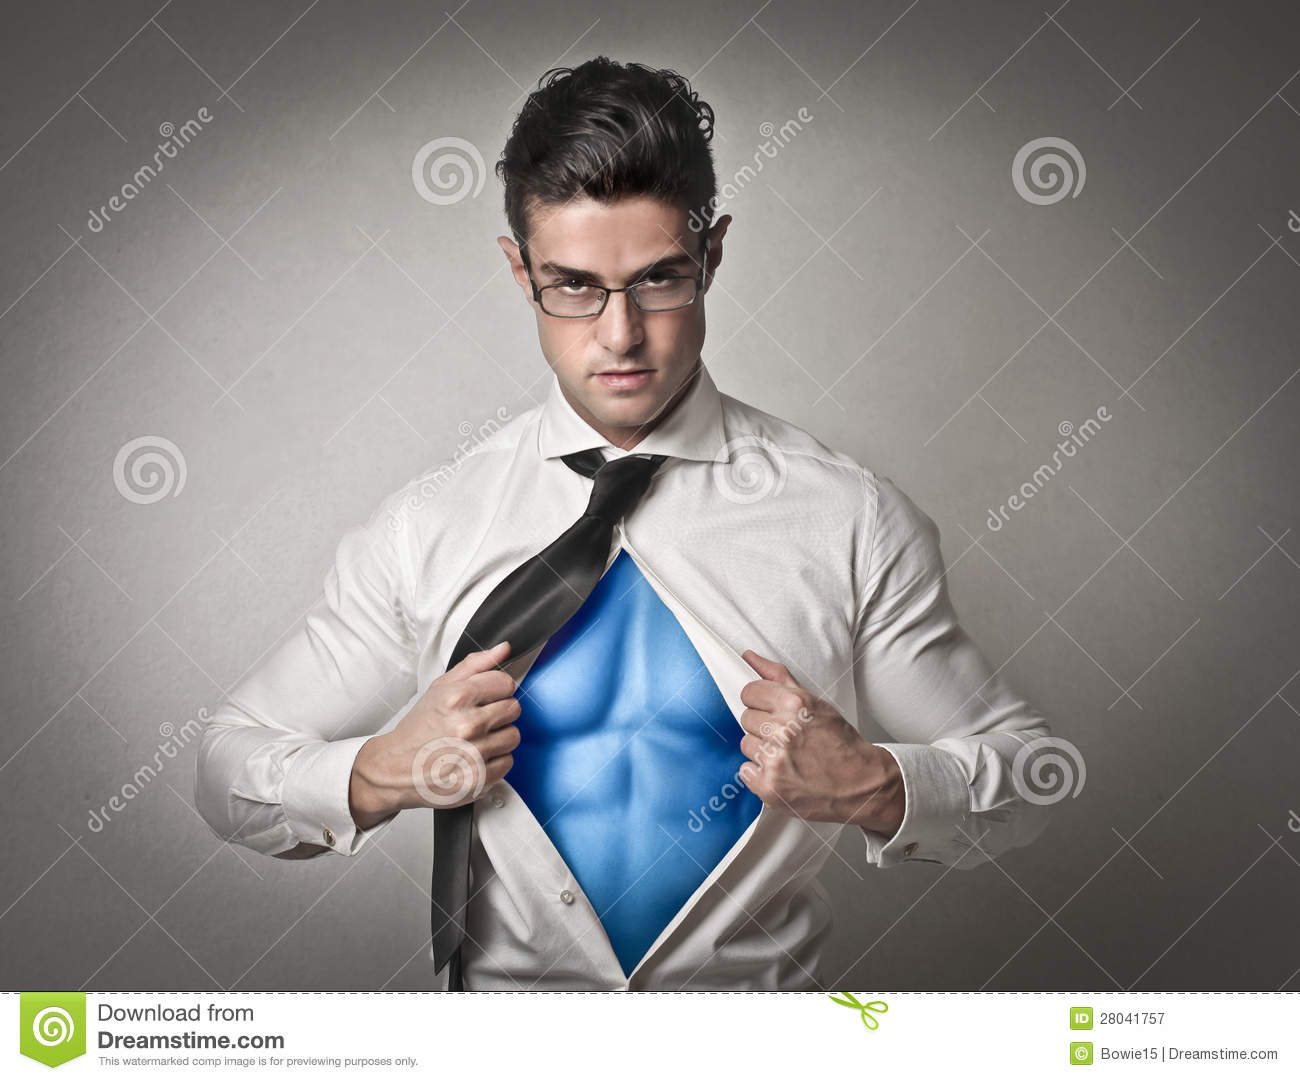 superman royalty free stock photography image 28041757